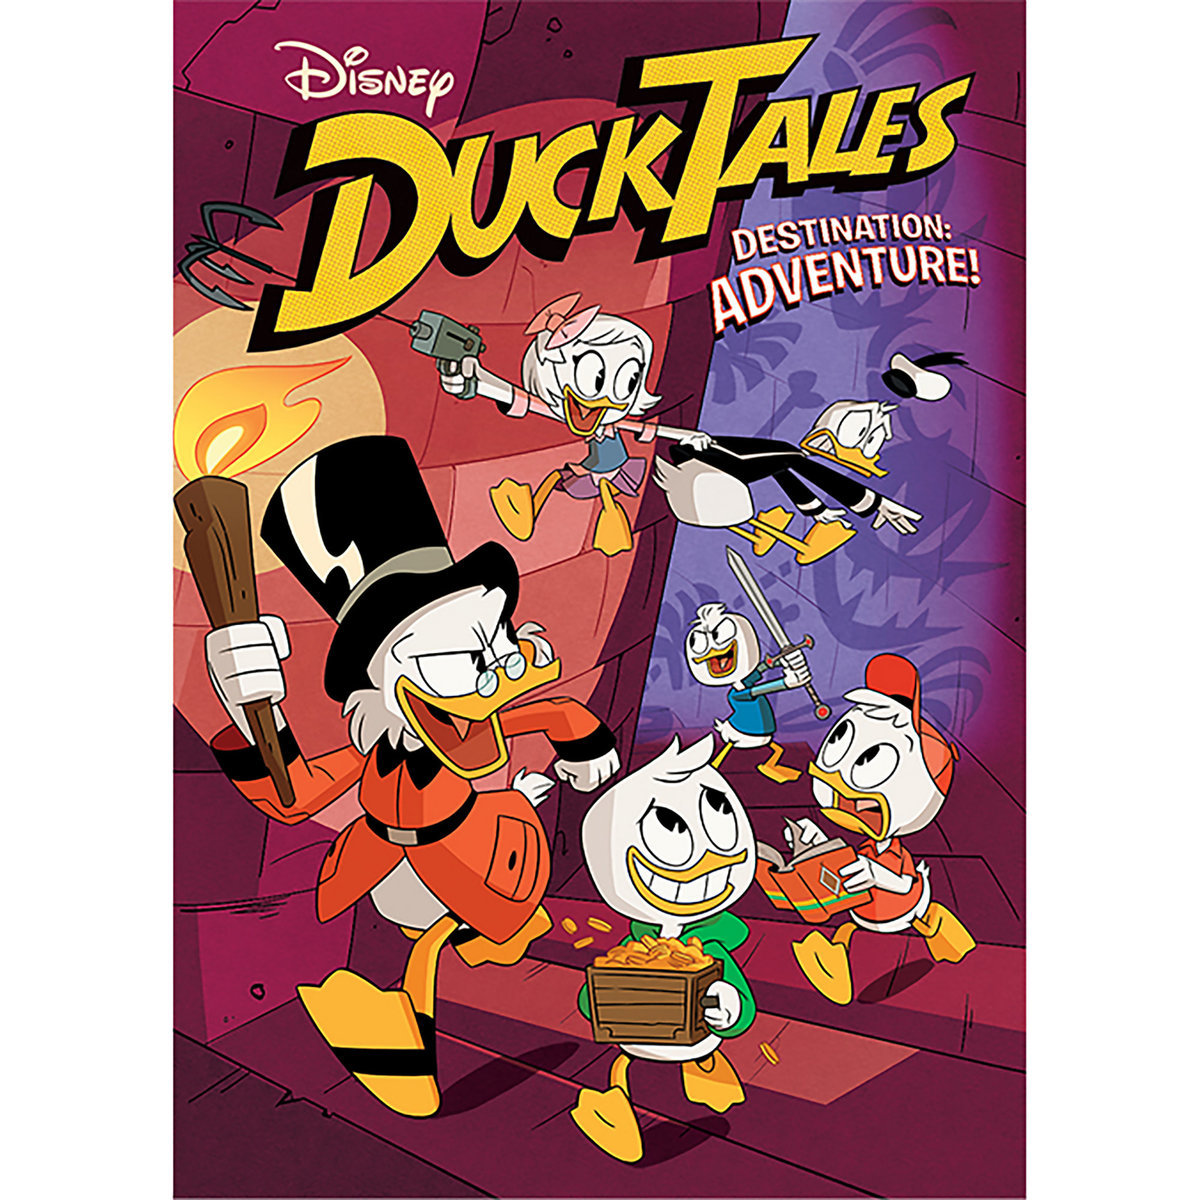 a6915a6f607aa6 Product Image of DuckTales - Destination  Adventure! DVD   1